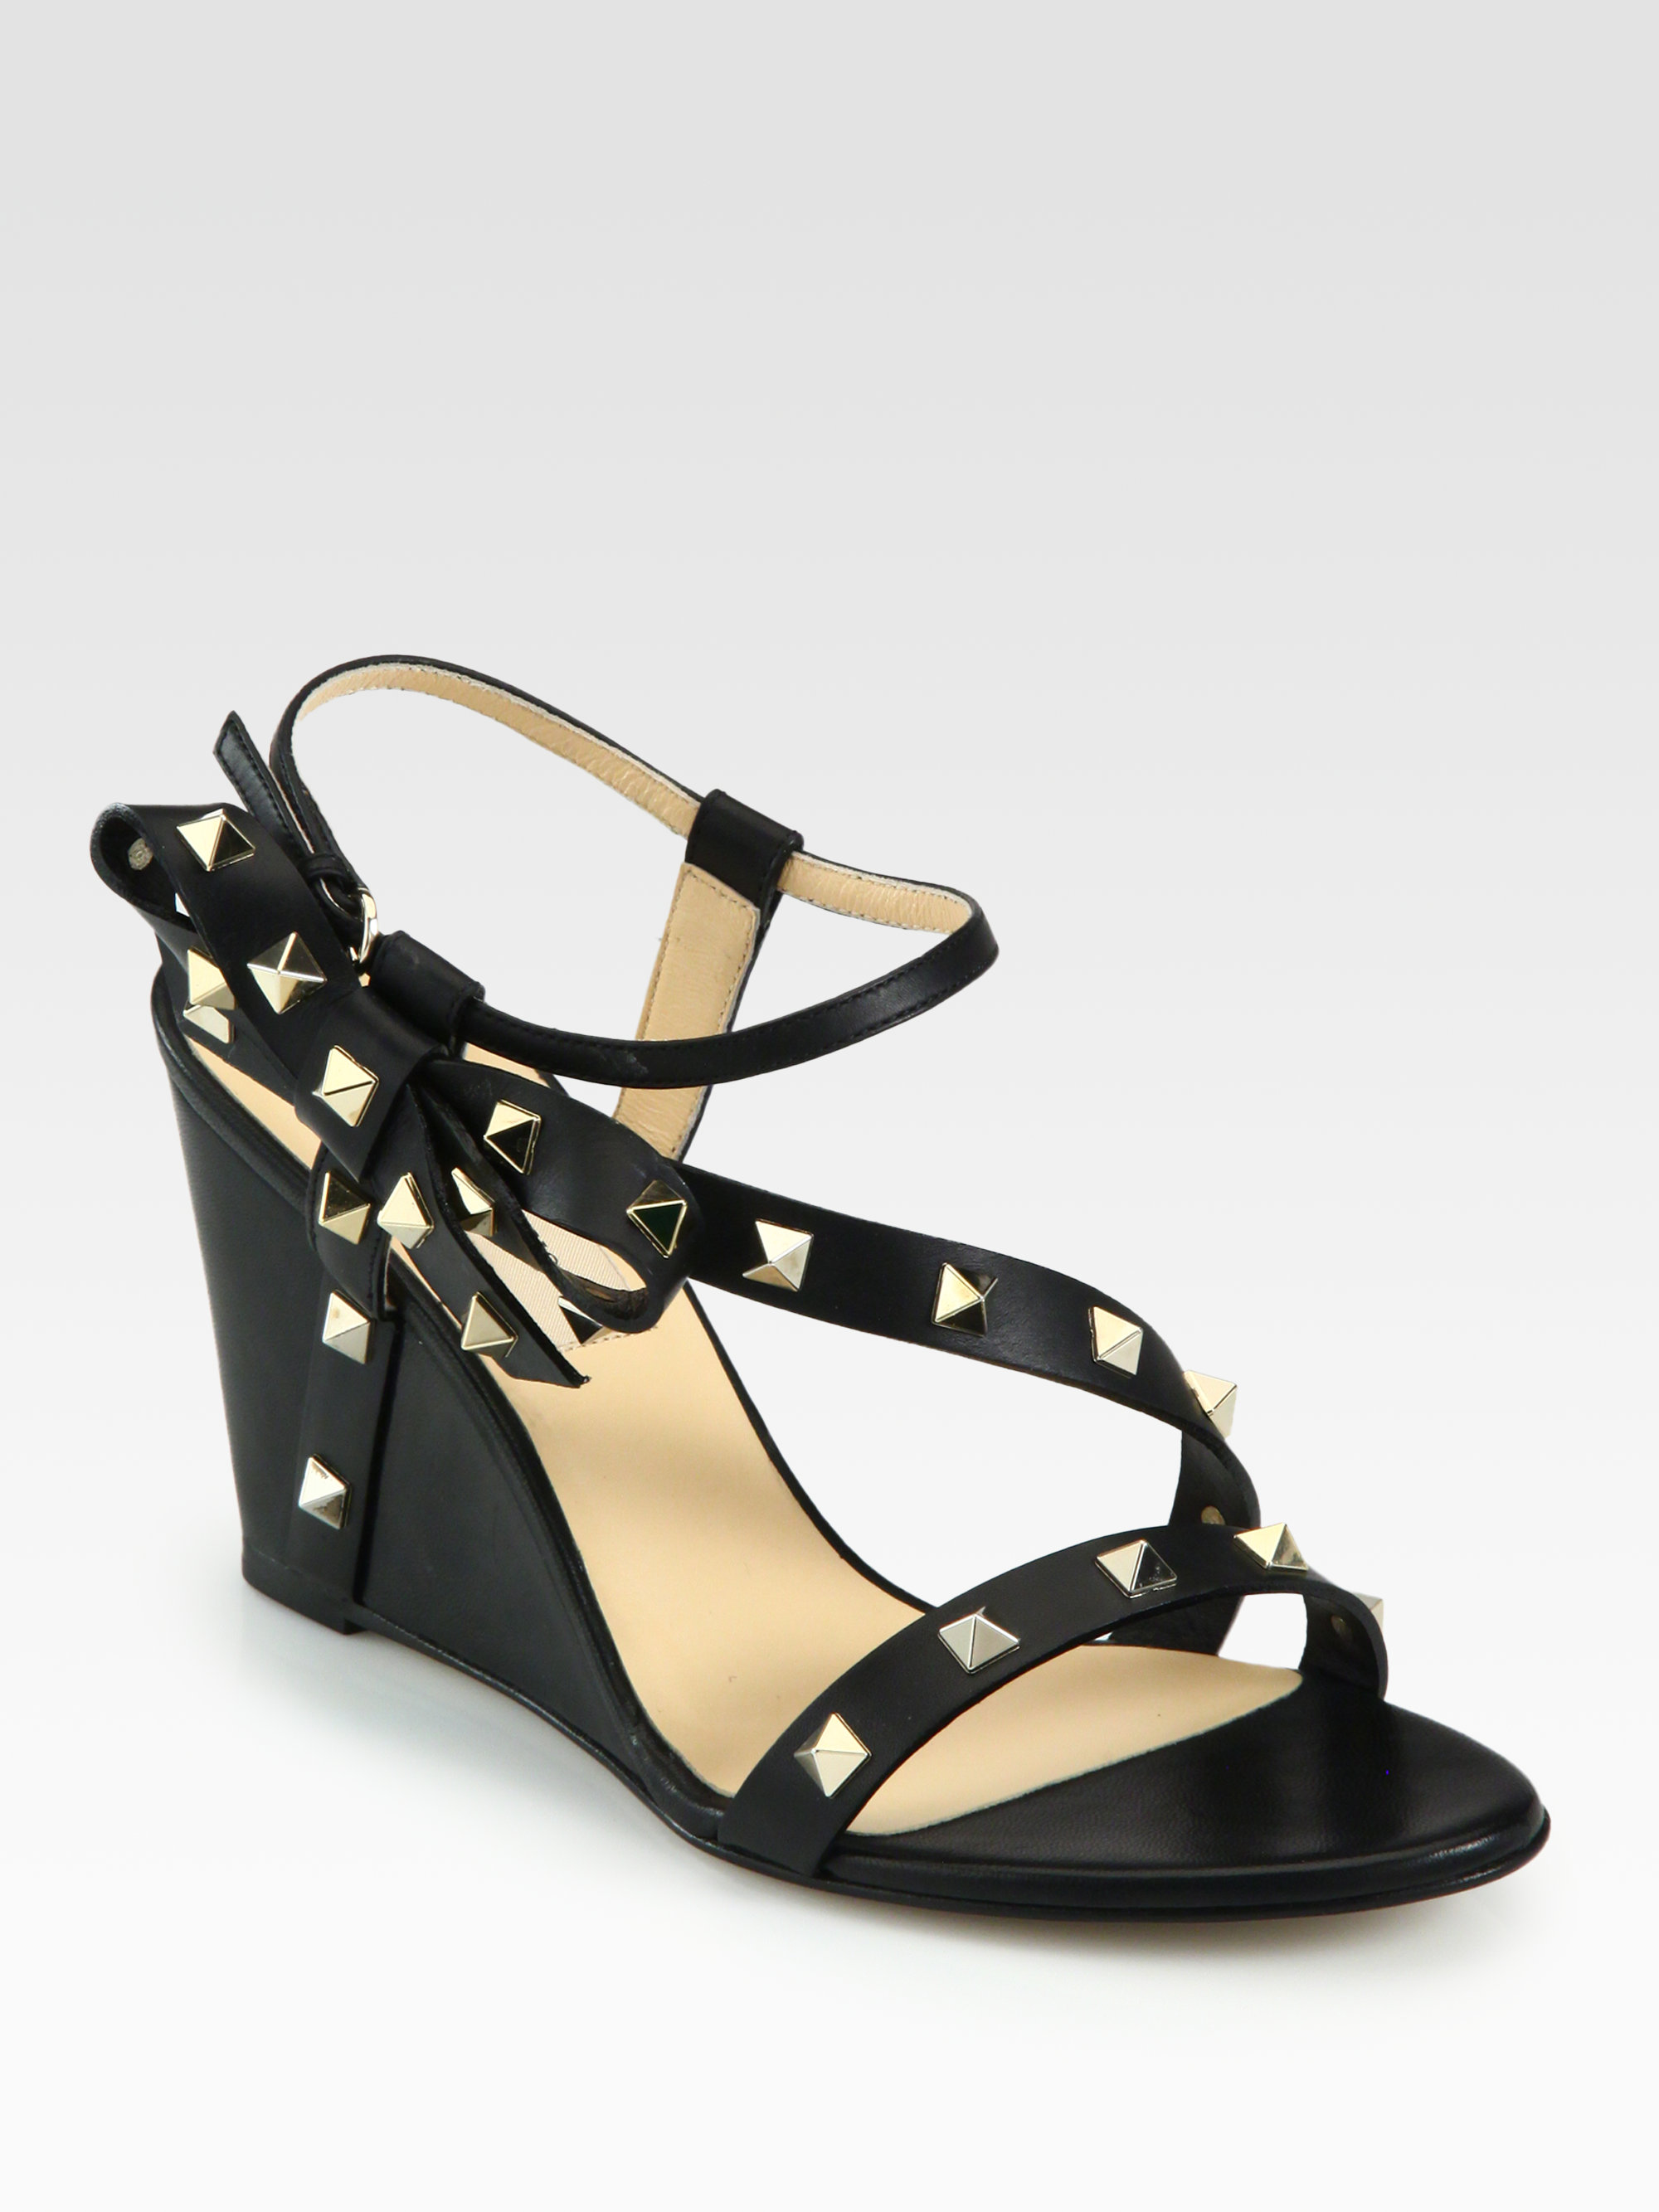 610a806bda3 Lyst - Valentino Rockstud Leather Bow Wedge Sandals in Black